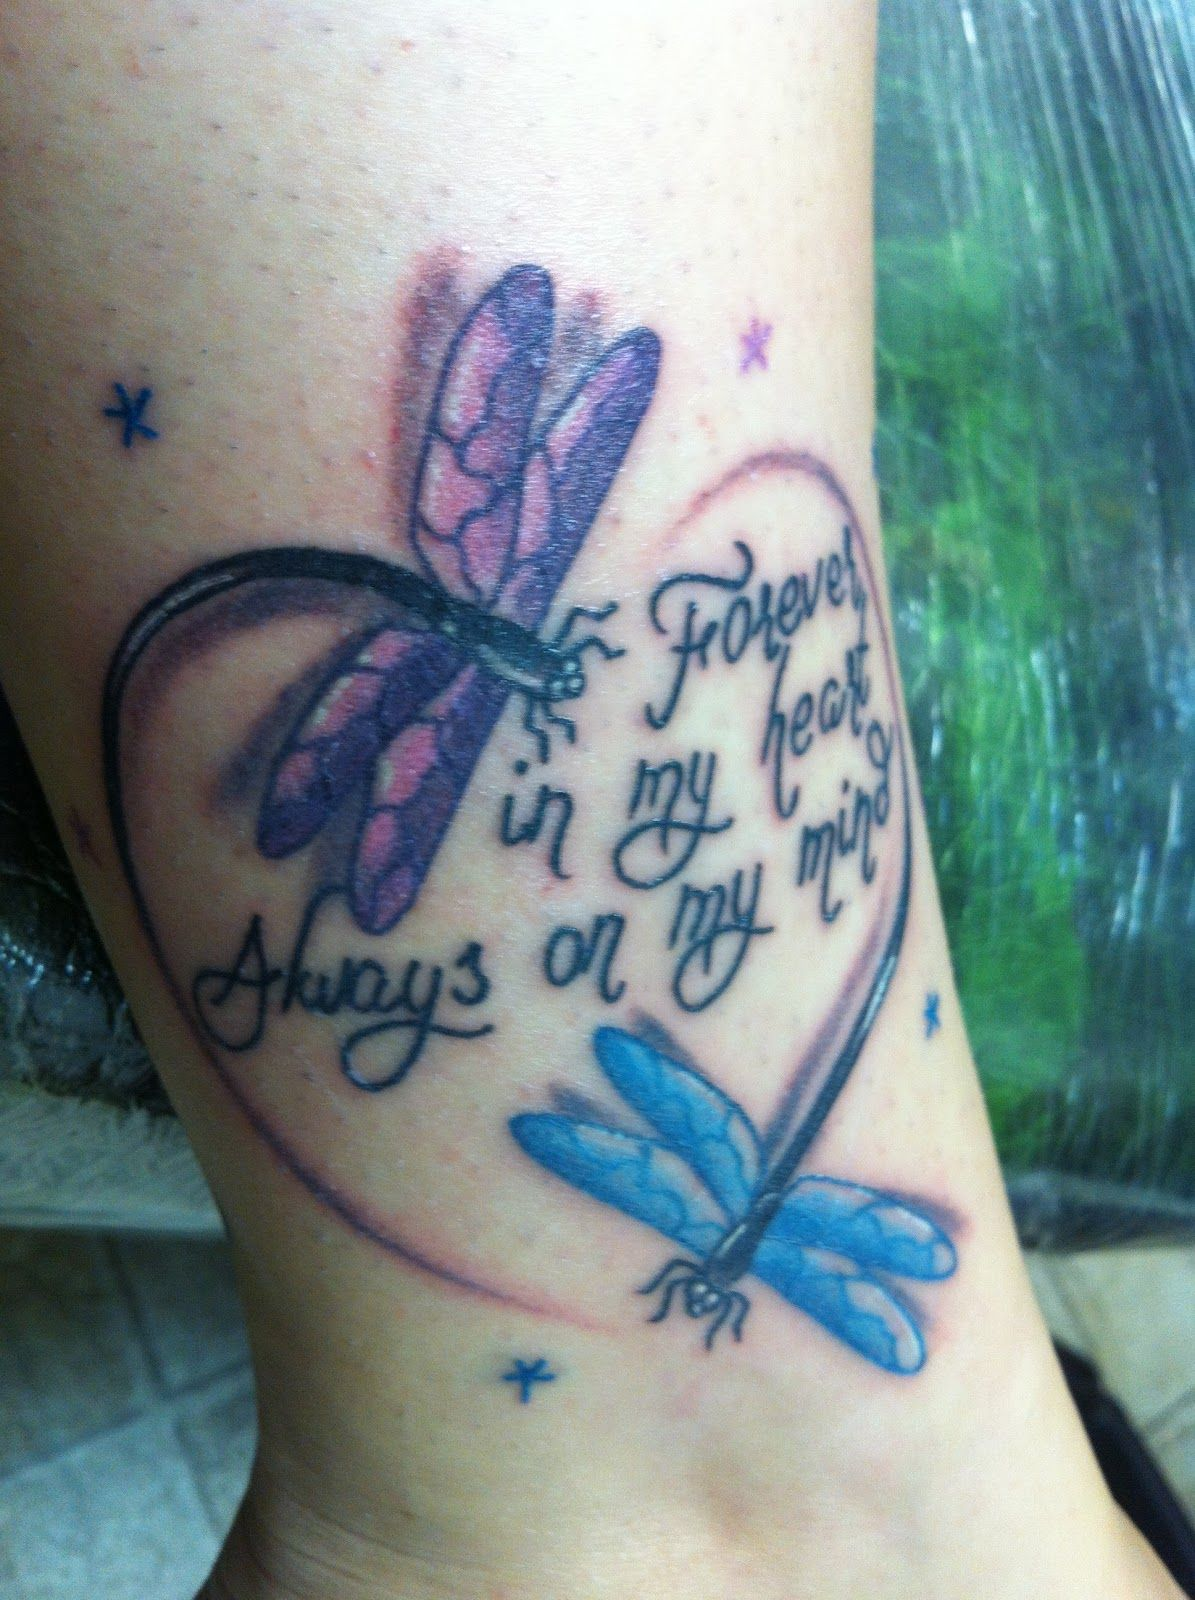 Dragonflies symbolize lost loved ones image for Tattoos for lost loved ones quotes